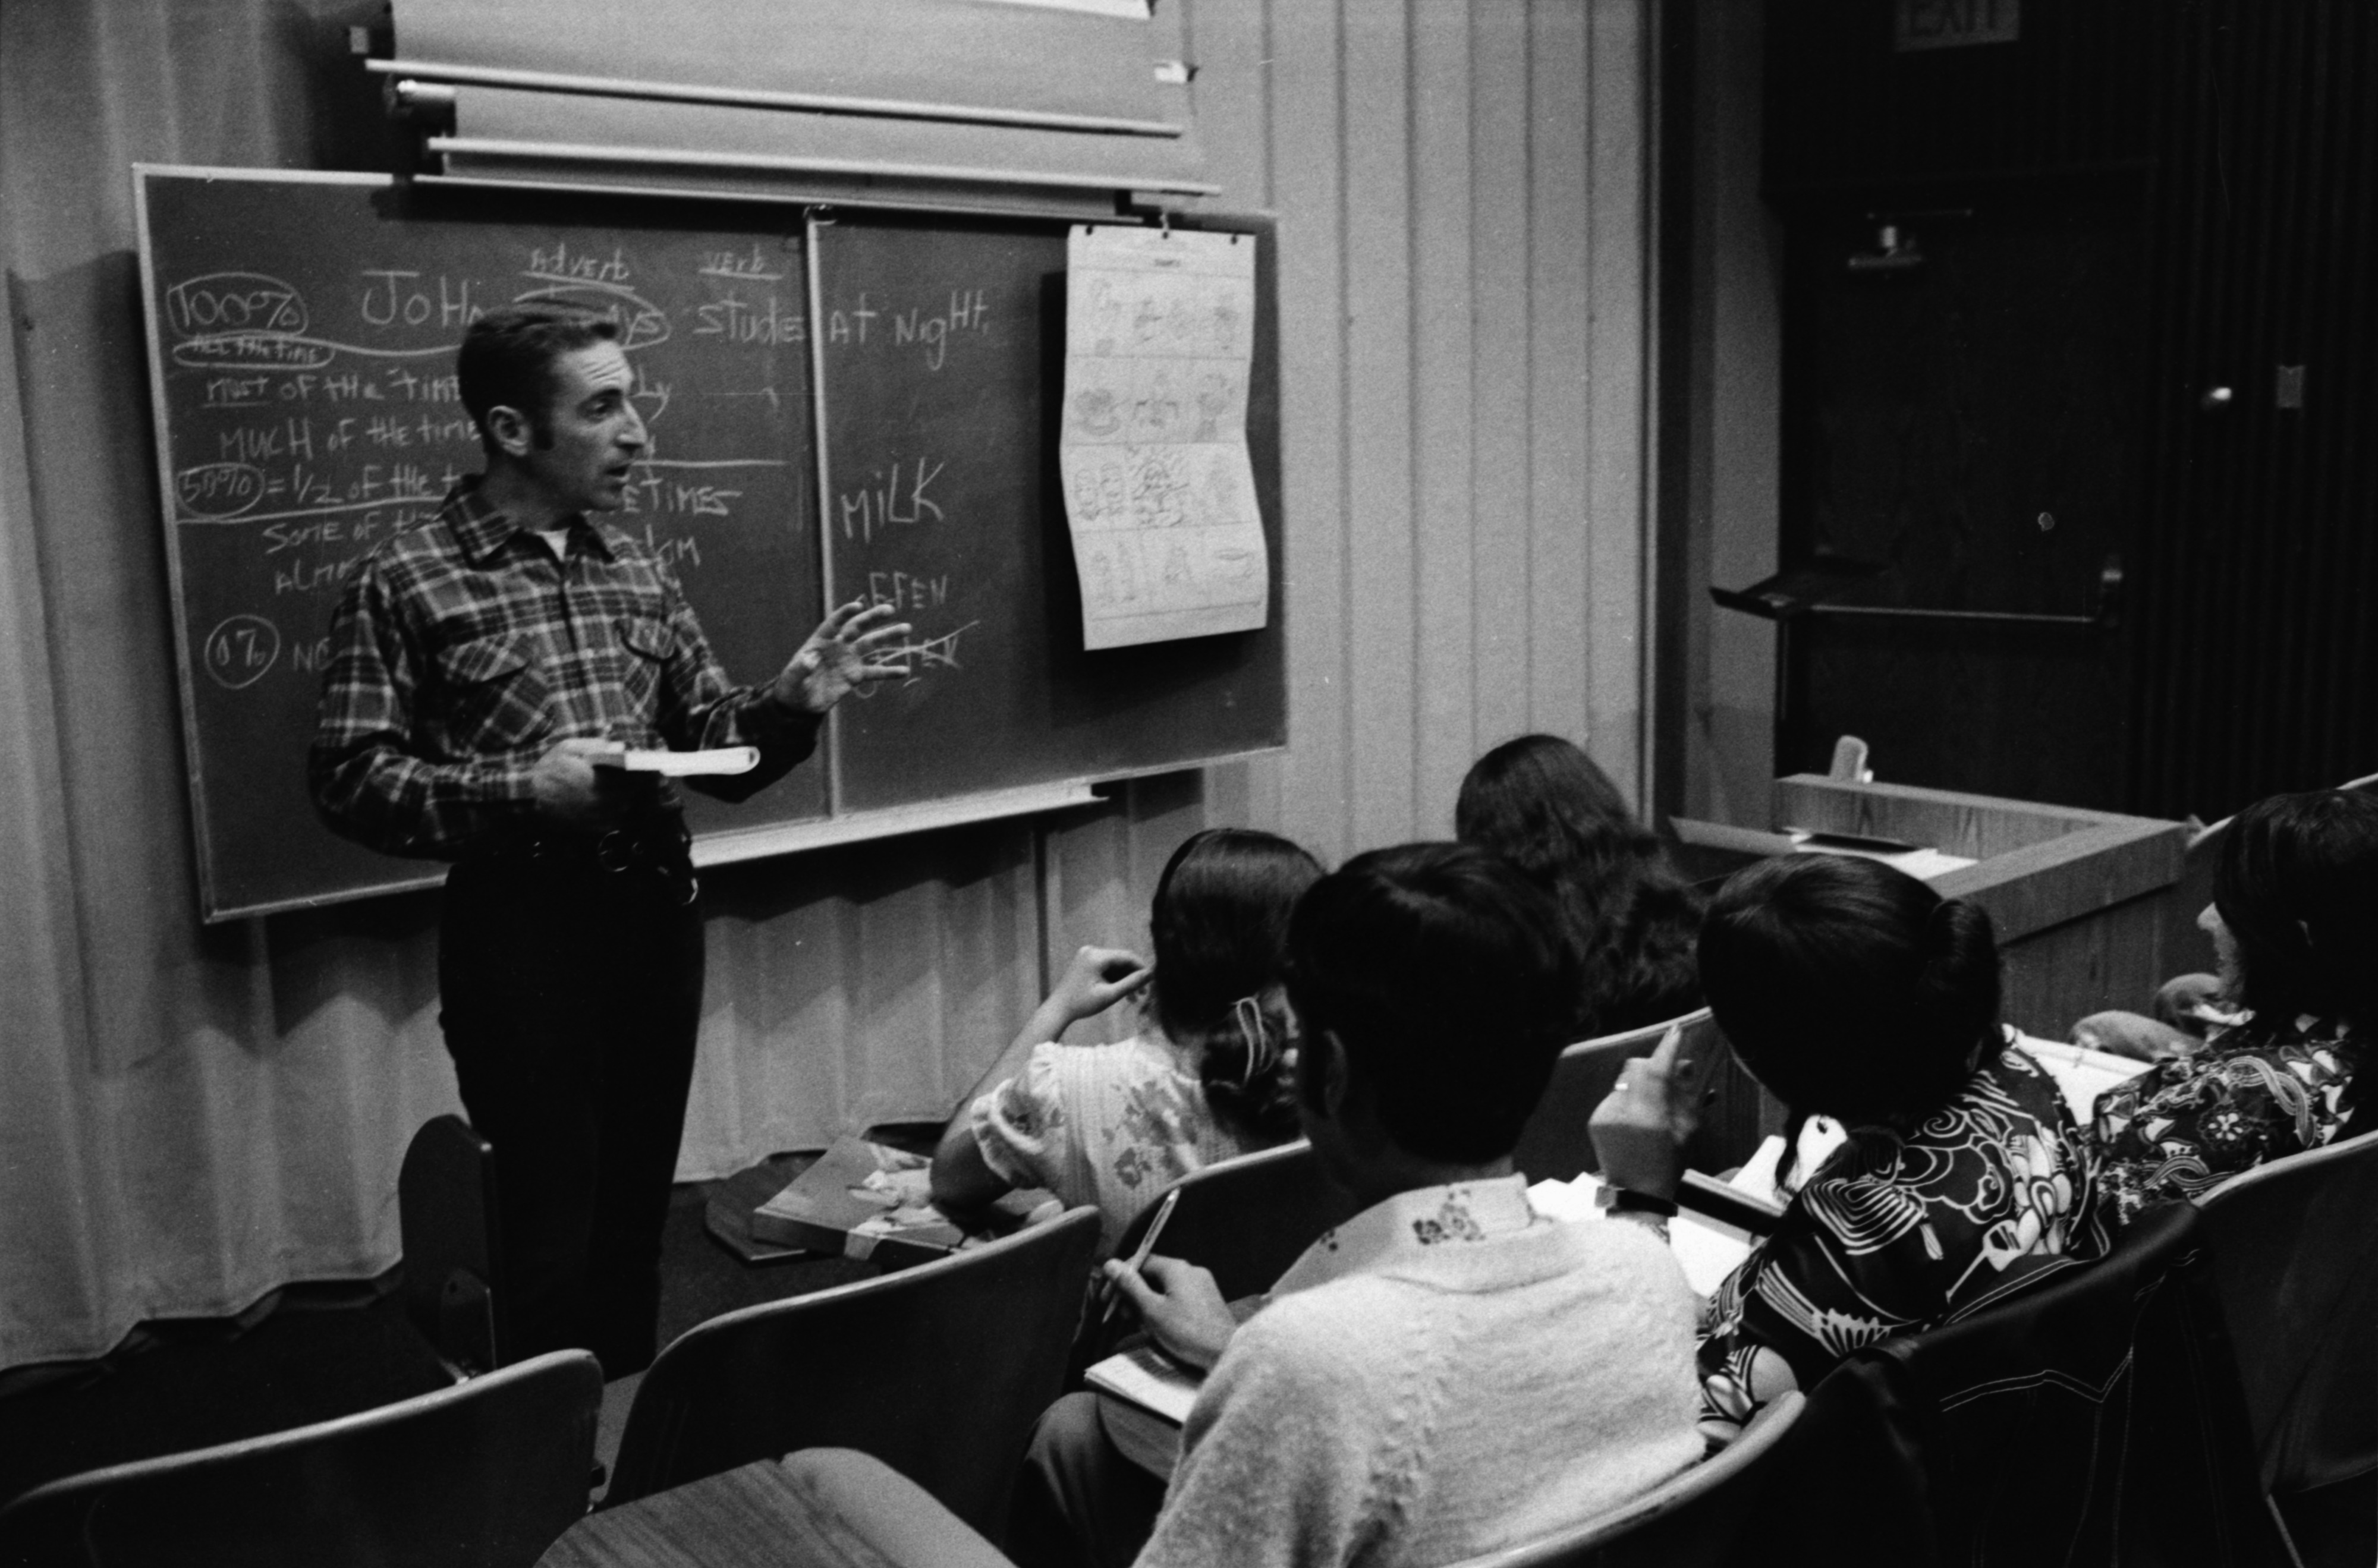 Teacher Kent Overbey Teaches English as a Foreign Language at Huron High School, October 1974 image